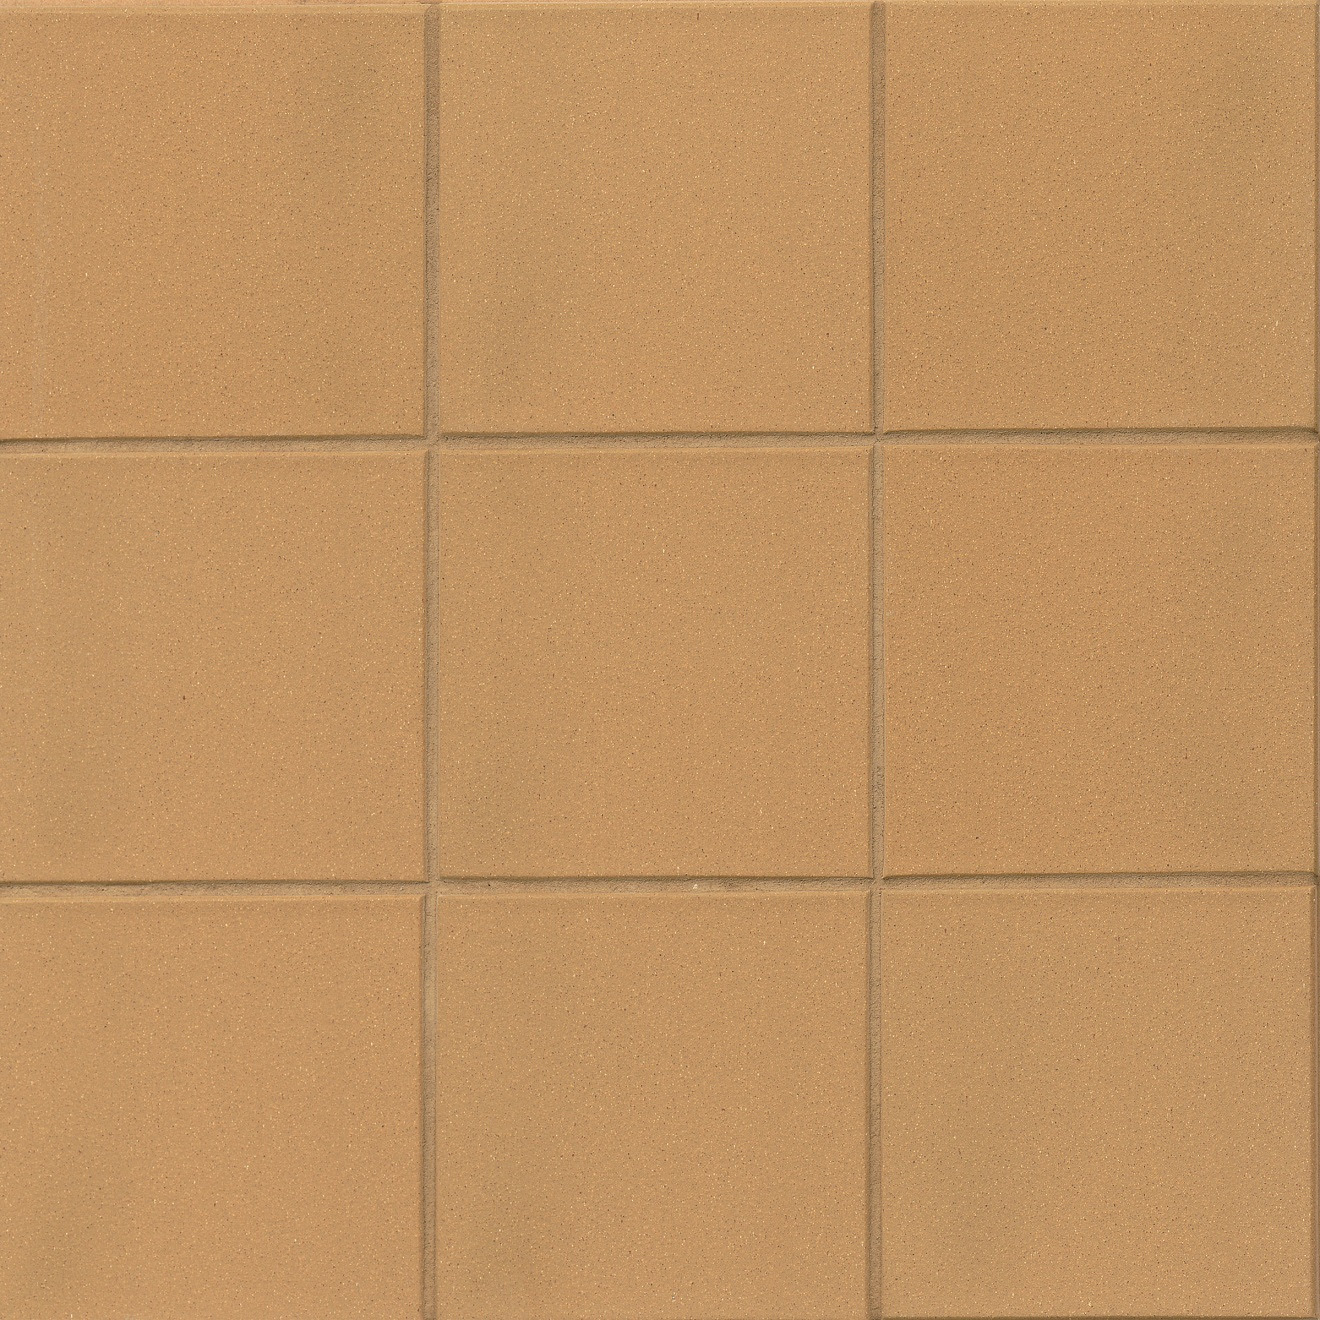 Metropolitan 6 X 6 Floor Wall Tile In Adobe